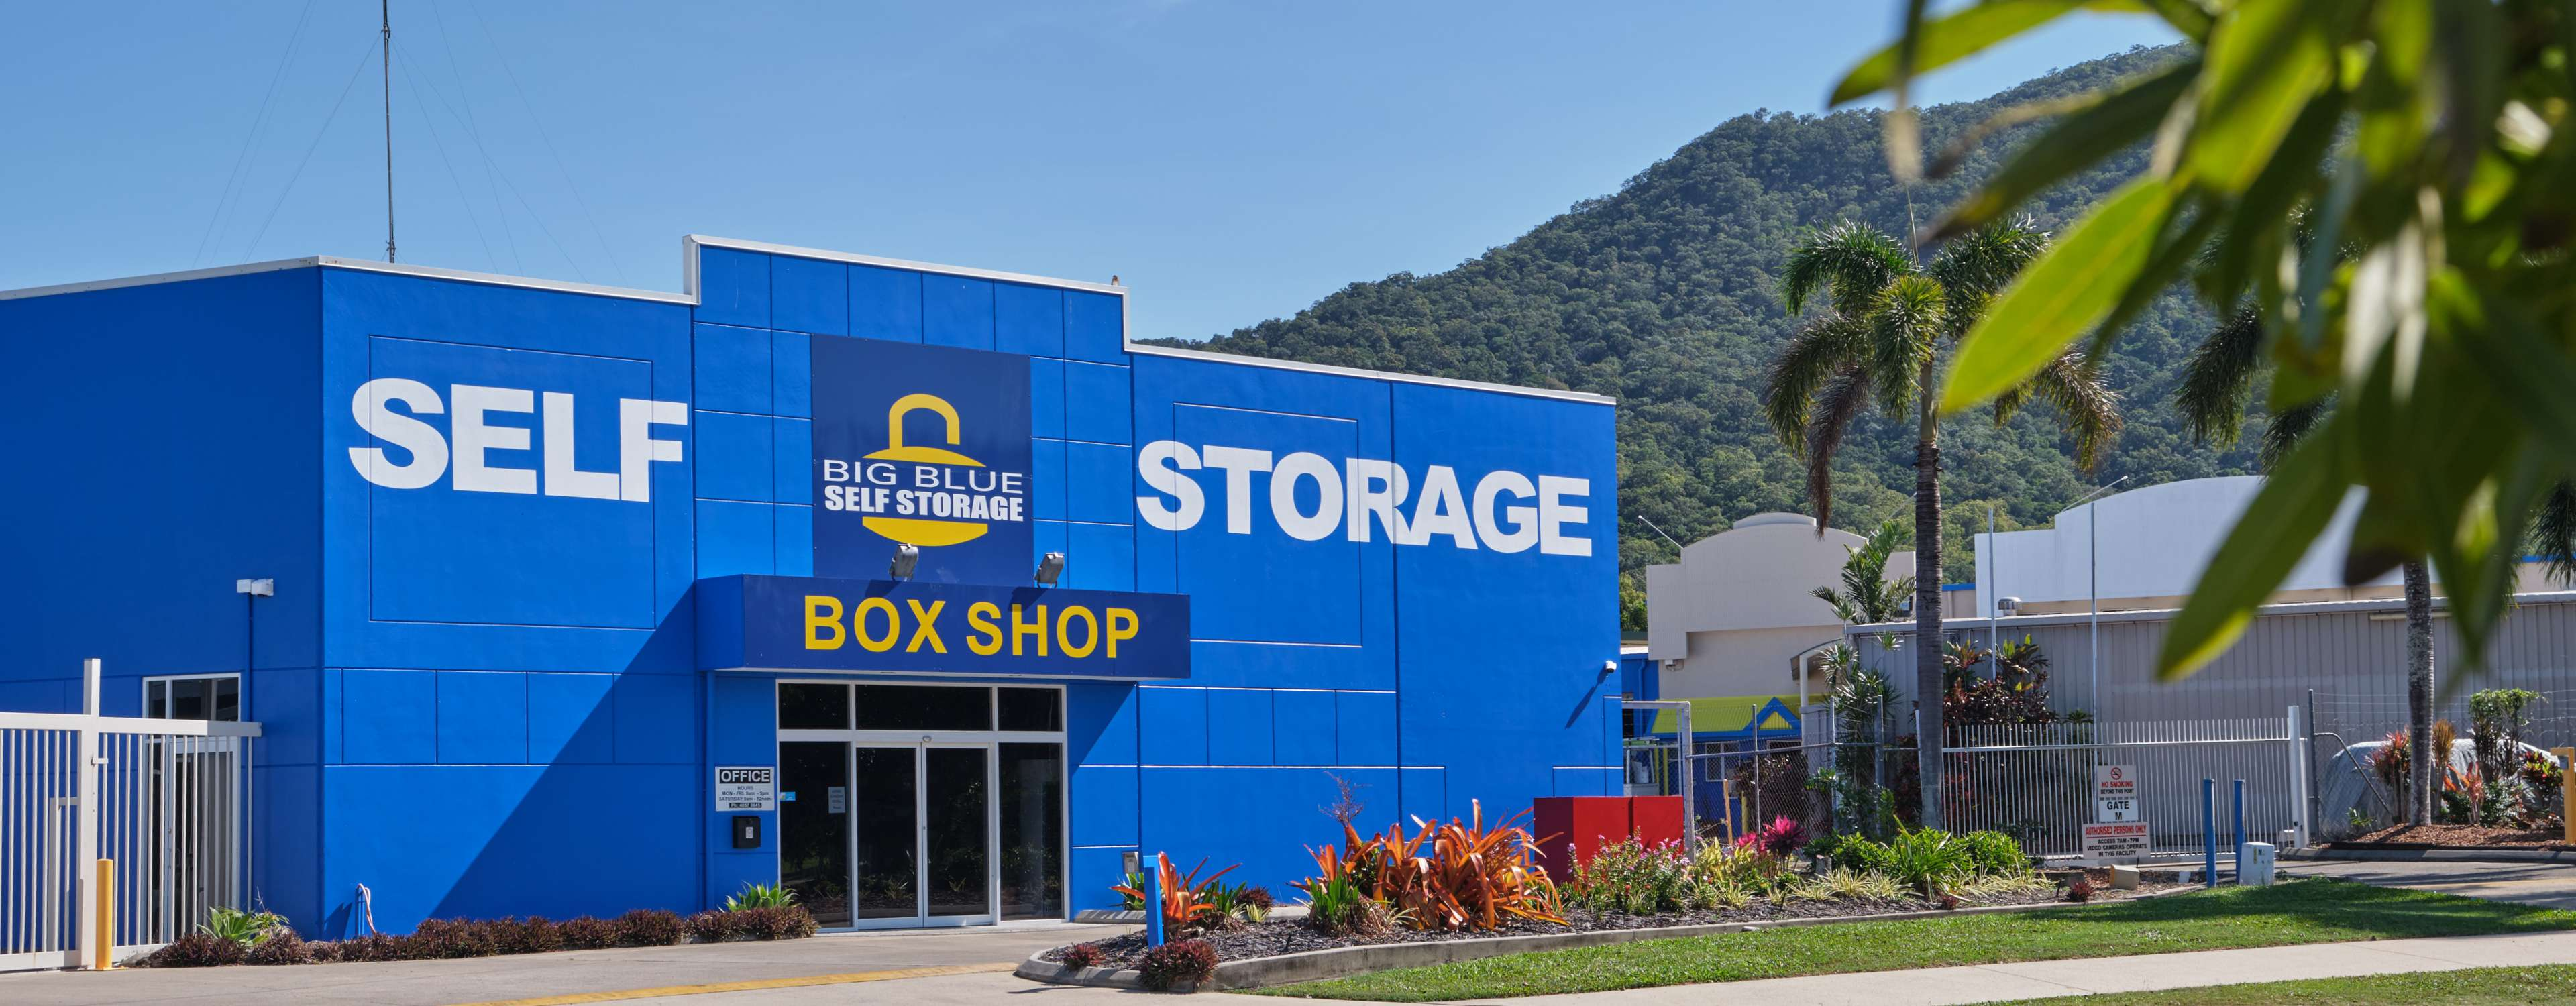 cairns self storage